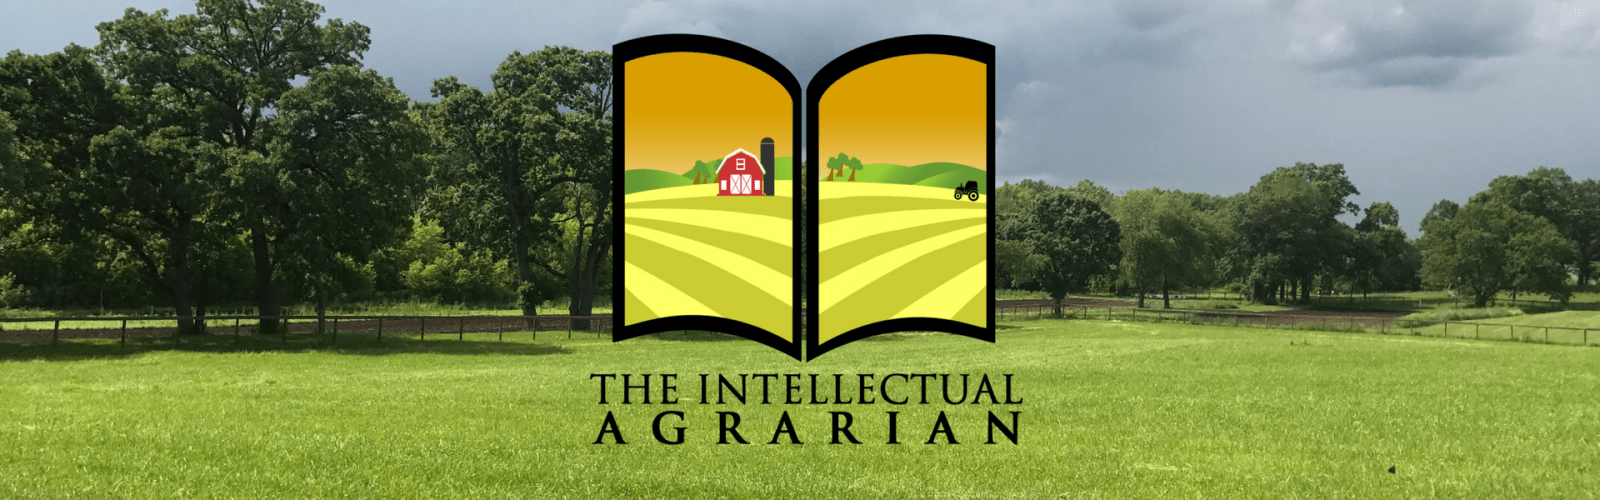 The Intellectual Agrarian